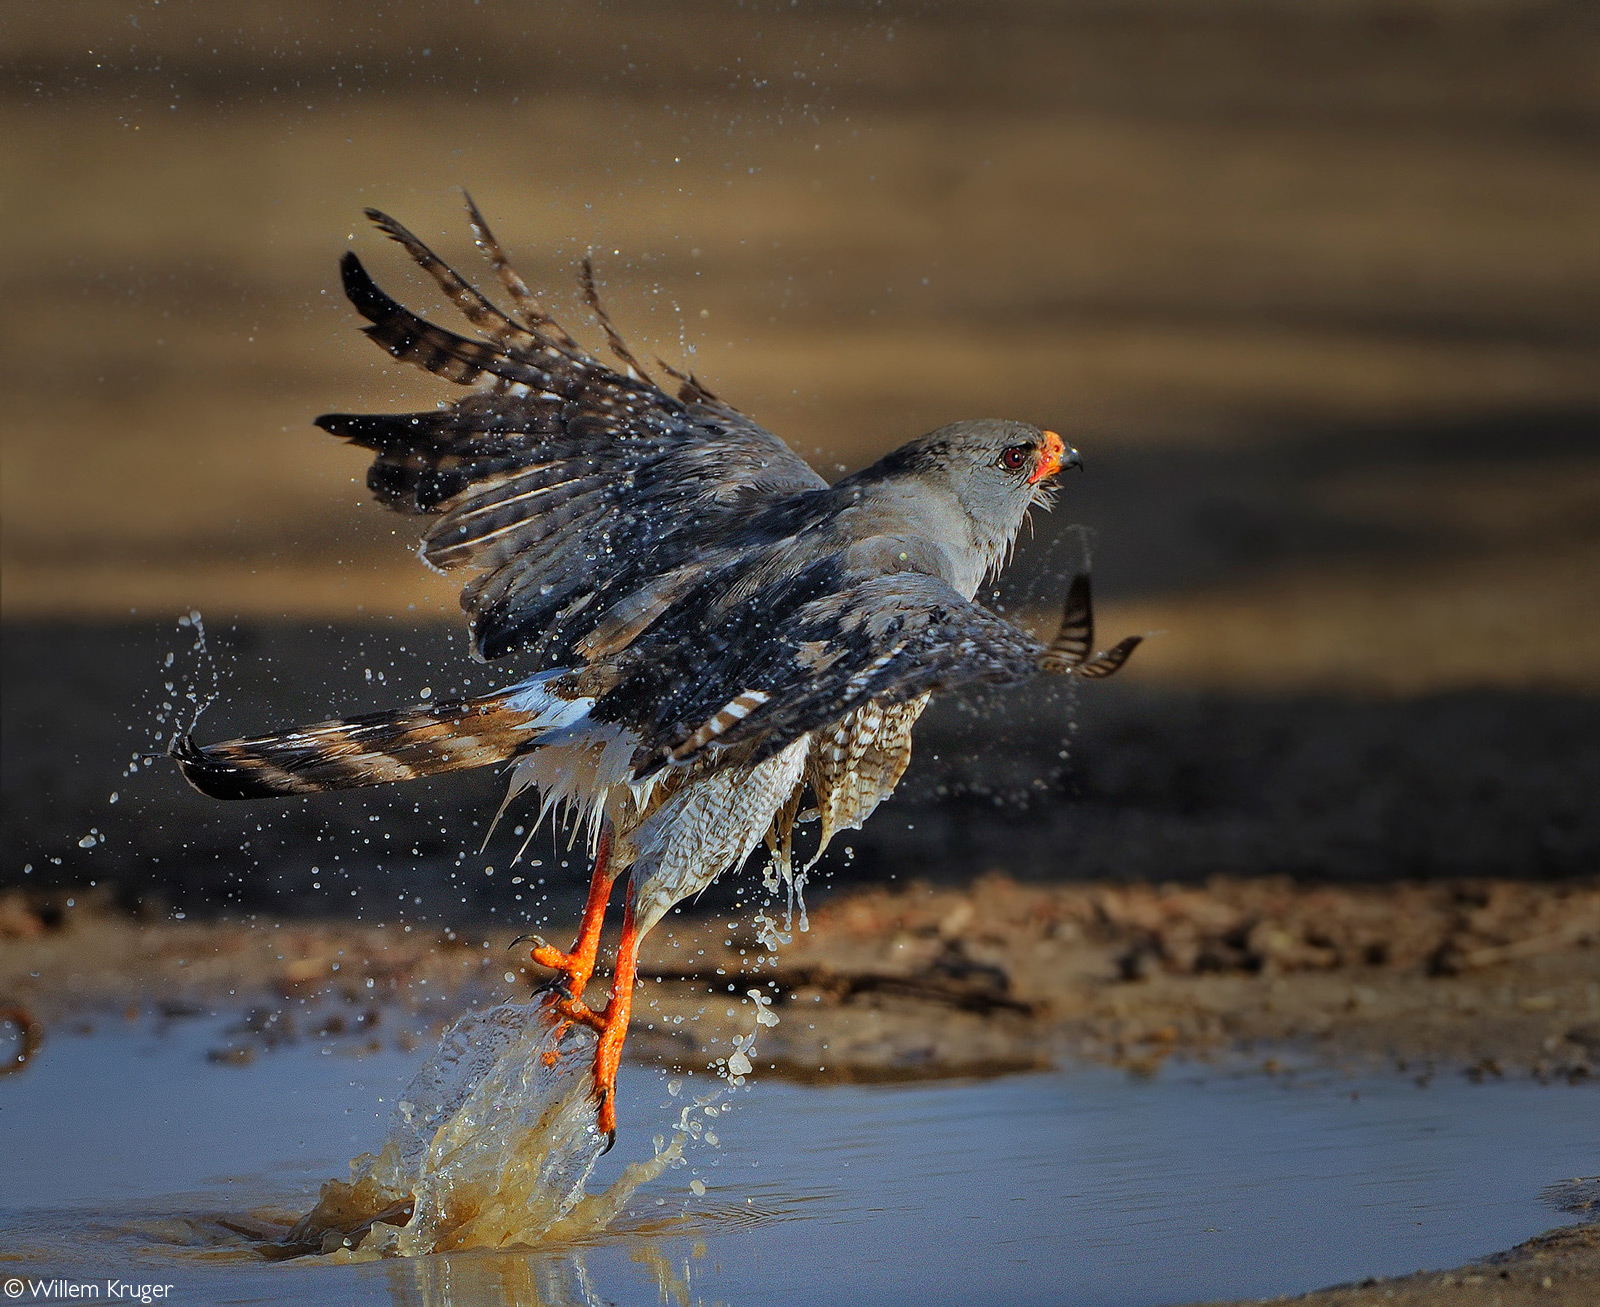 A gabar goshawk takes off after bathing at a waterhole. Kgalagadi Transfrontier Park, South Africa © Willem Kruger